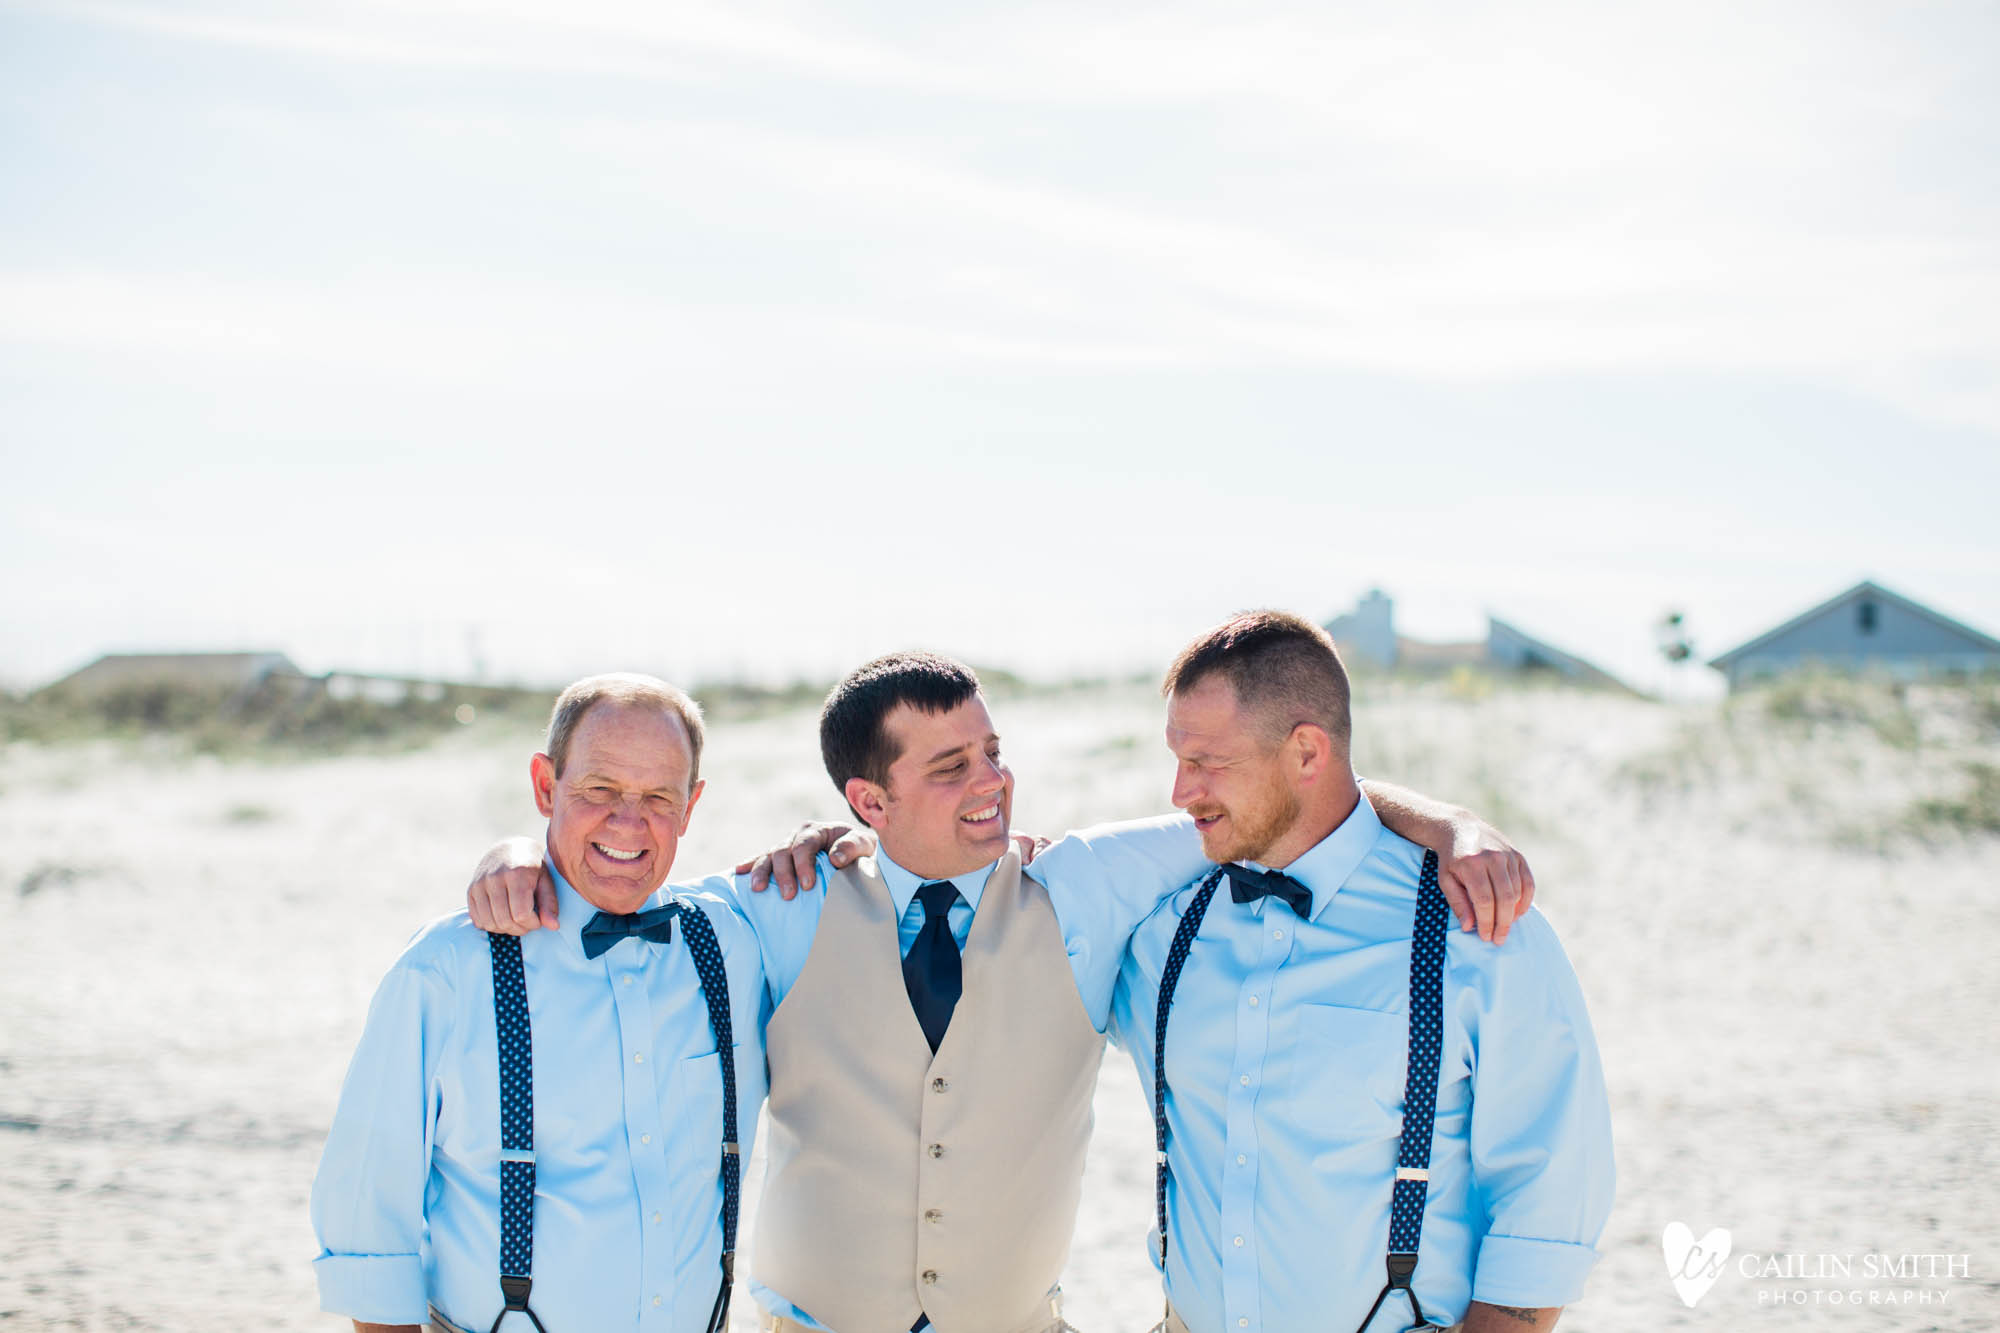 Kimberly_Ross_Amelia_Island_Wedding_Photography_025.jpg